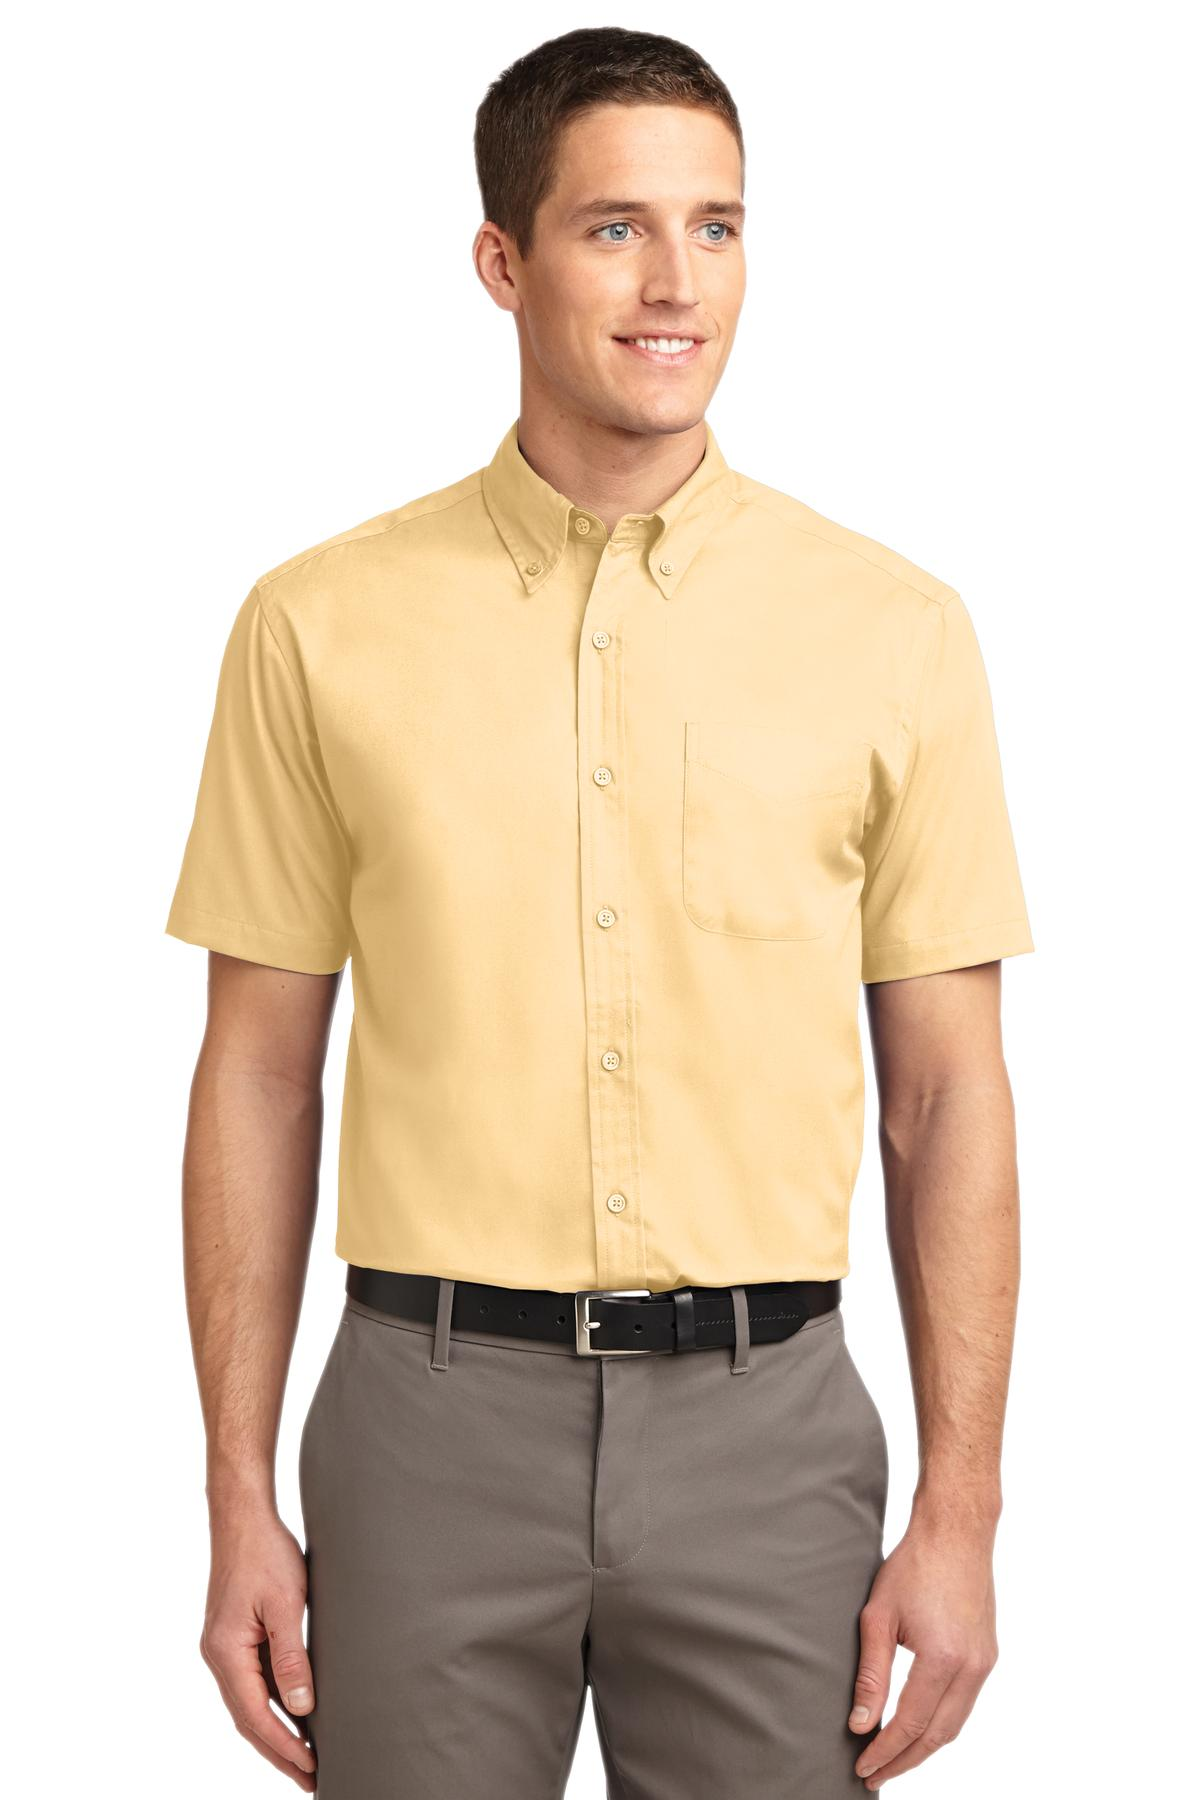 Port Authority ®  Tall Short Sleeve Easy Care Shirt. TLS508 - Yellow